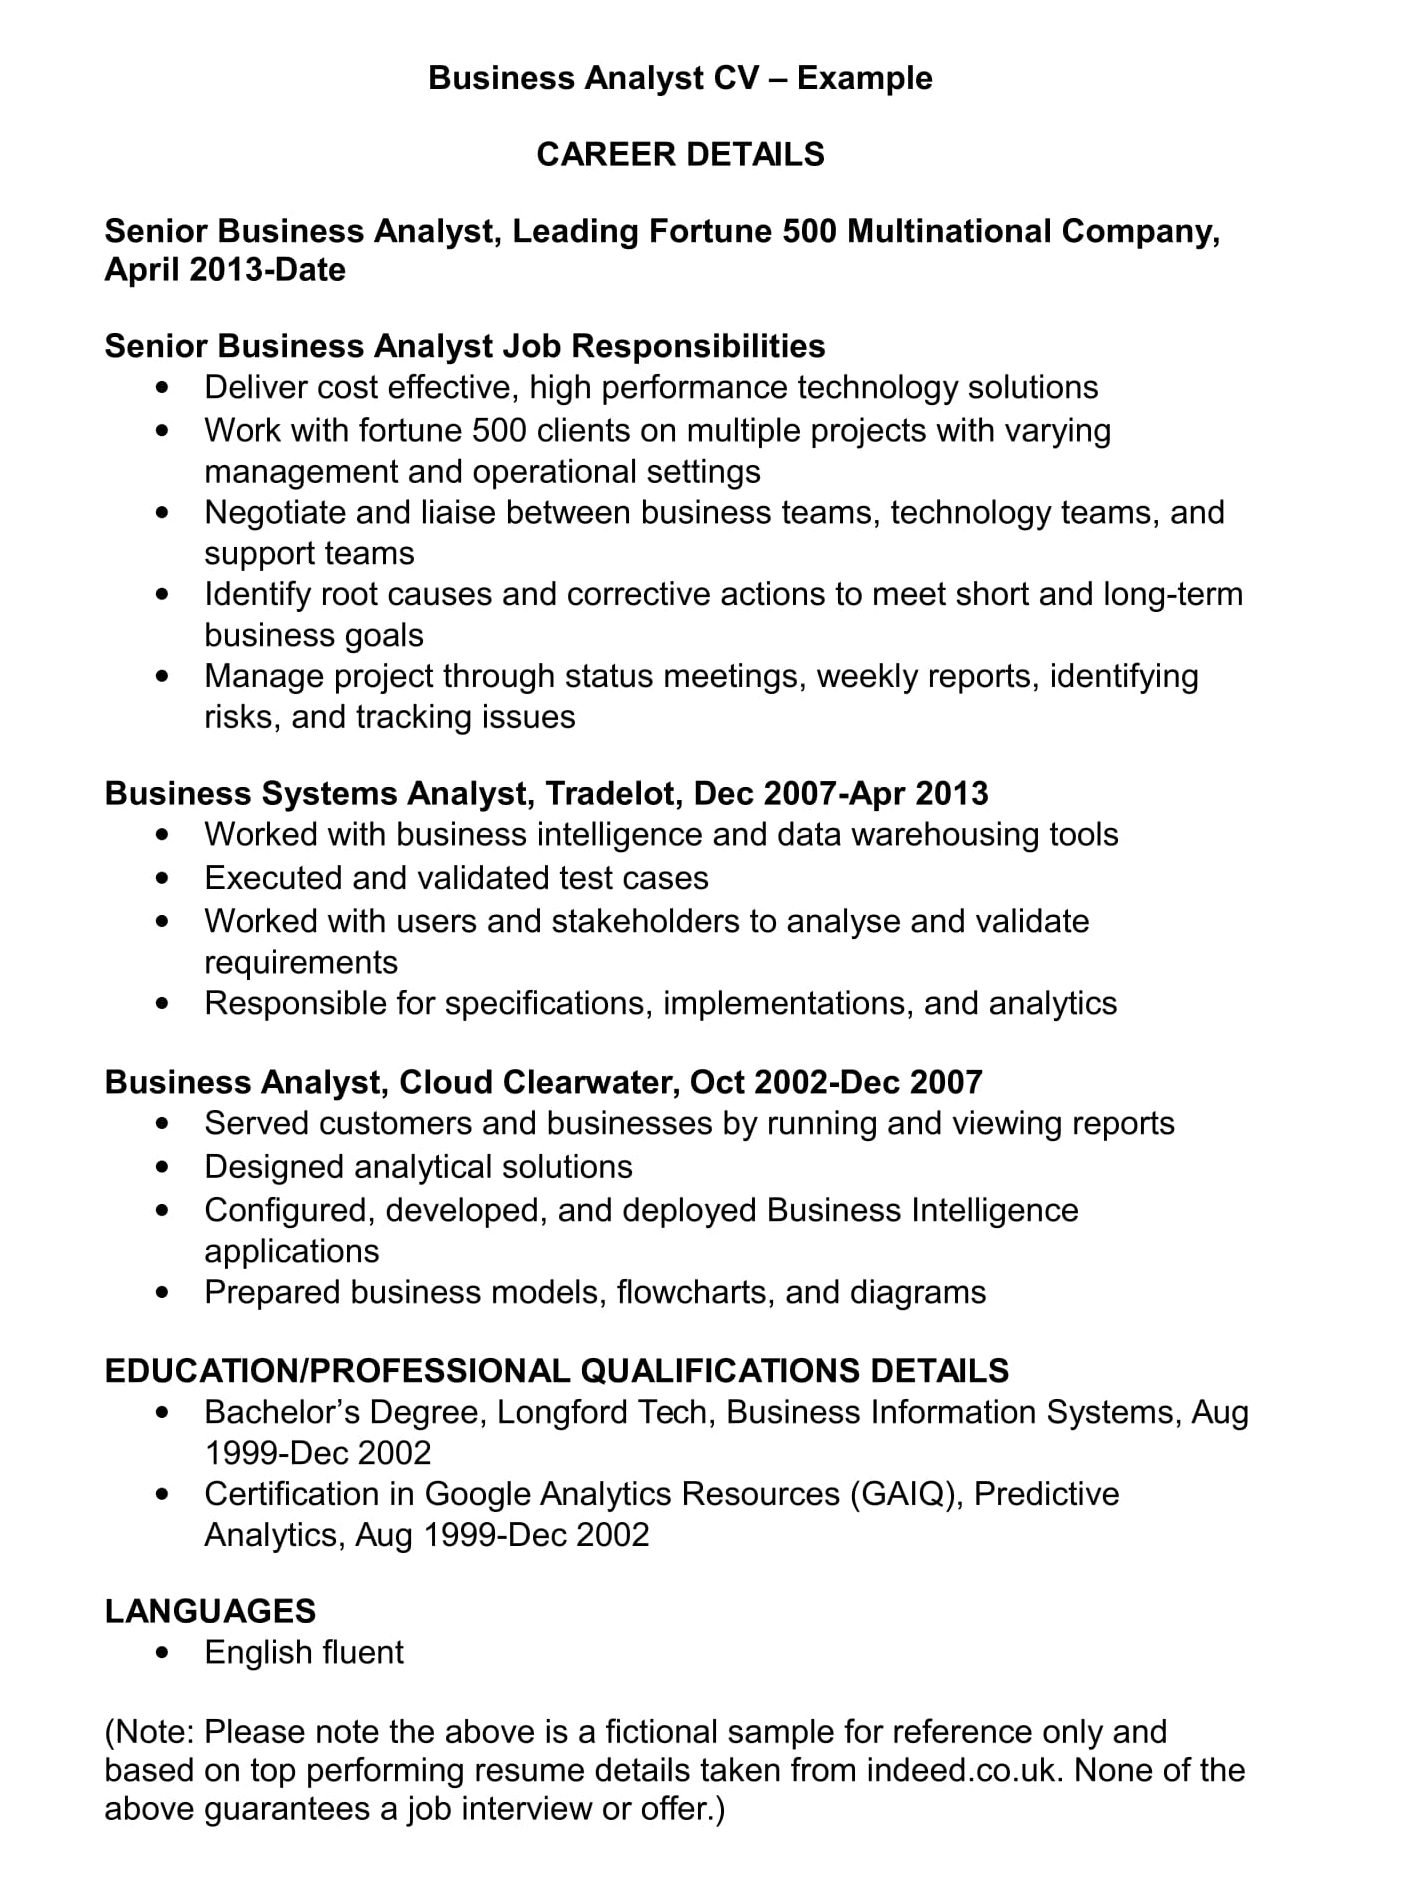 business analyst cv template and examples renaix resume indeed businsess example summary Resume Business Analyst Resume Indeed